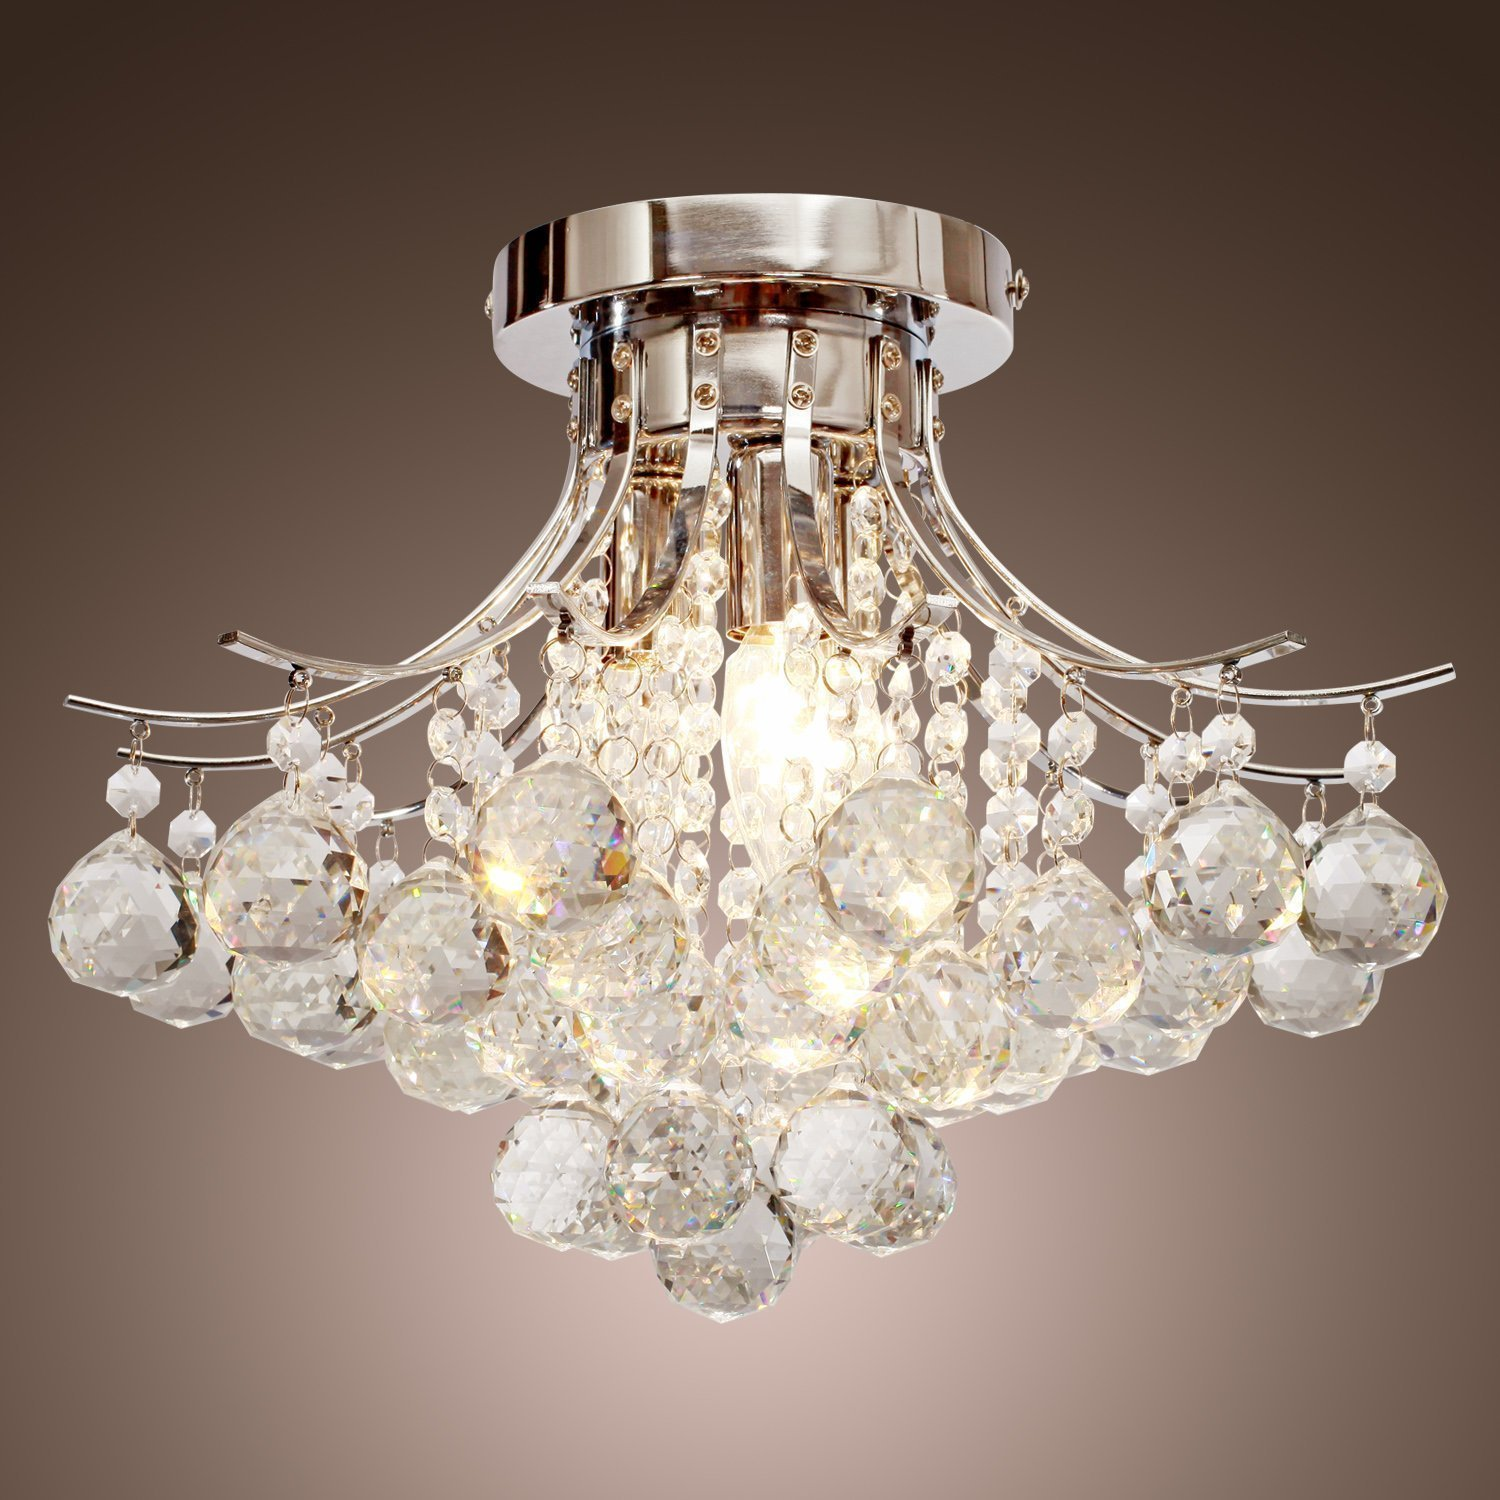 Choosing Chandelier ceiling lights for different rooms